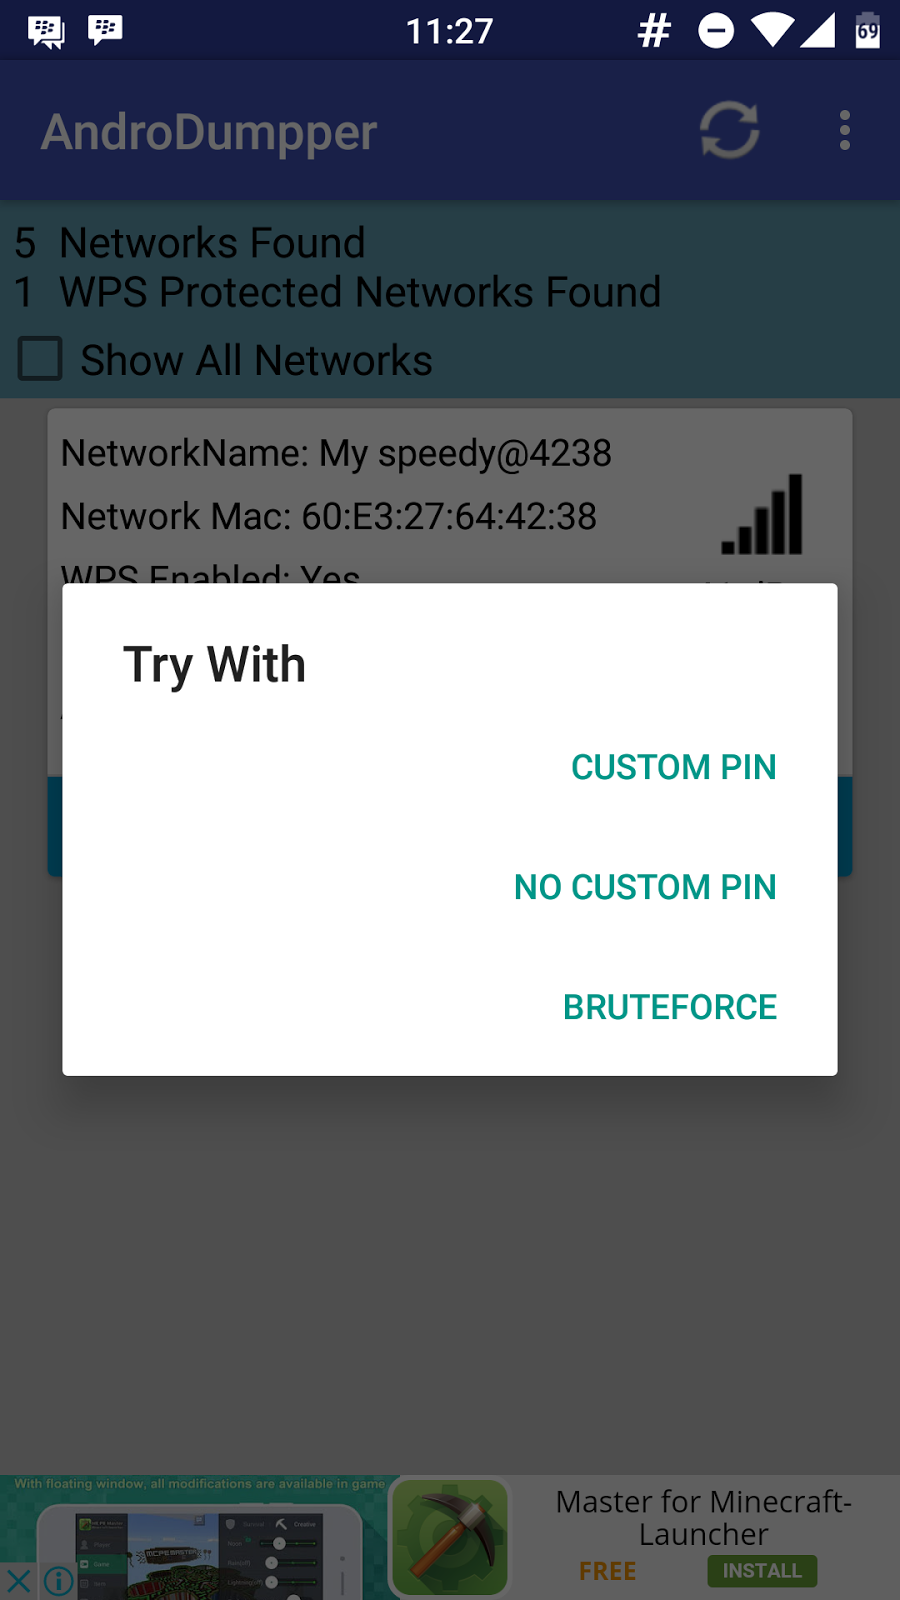 How To] Crack WiFi Password Using AndroDumpper (for Android